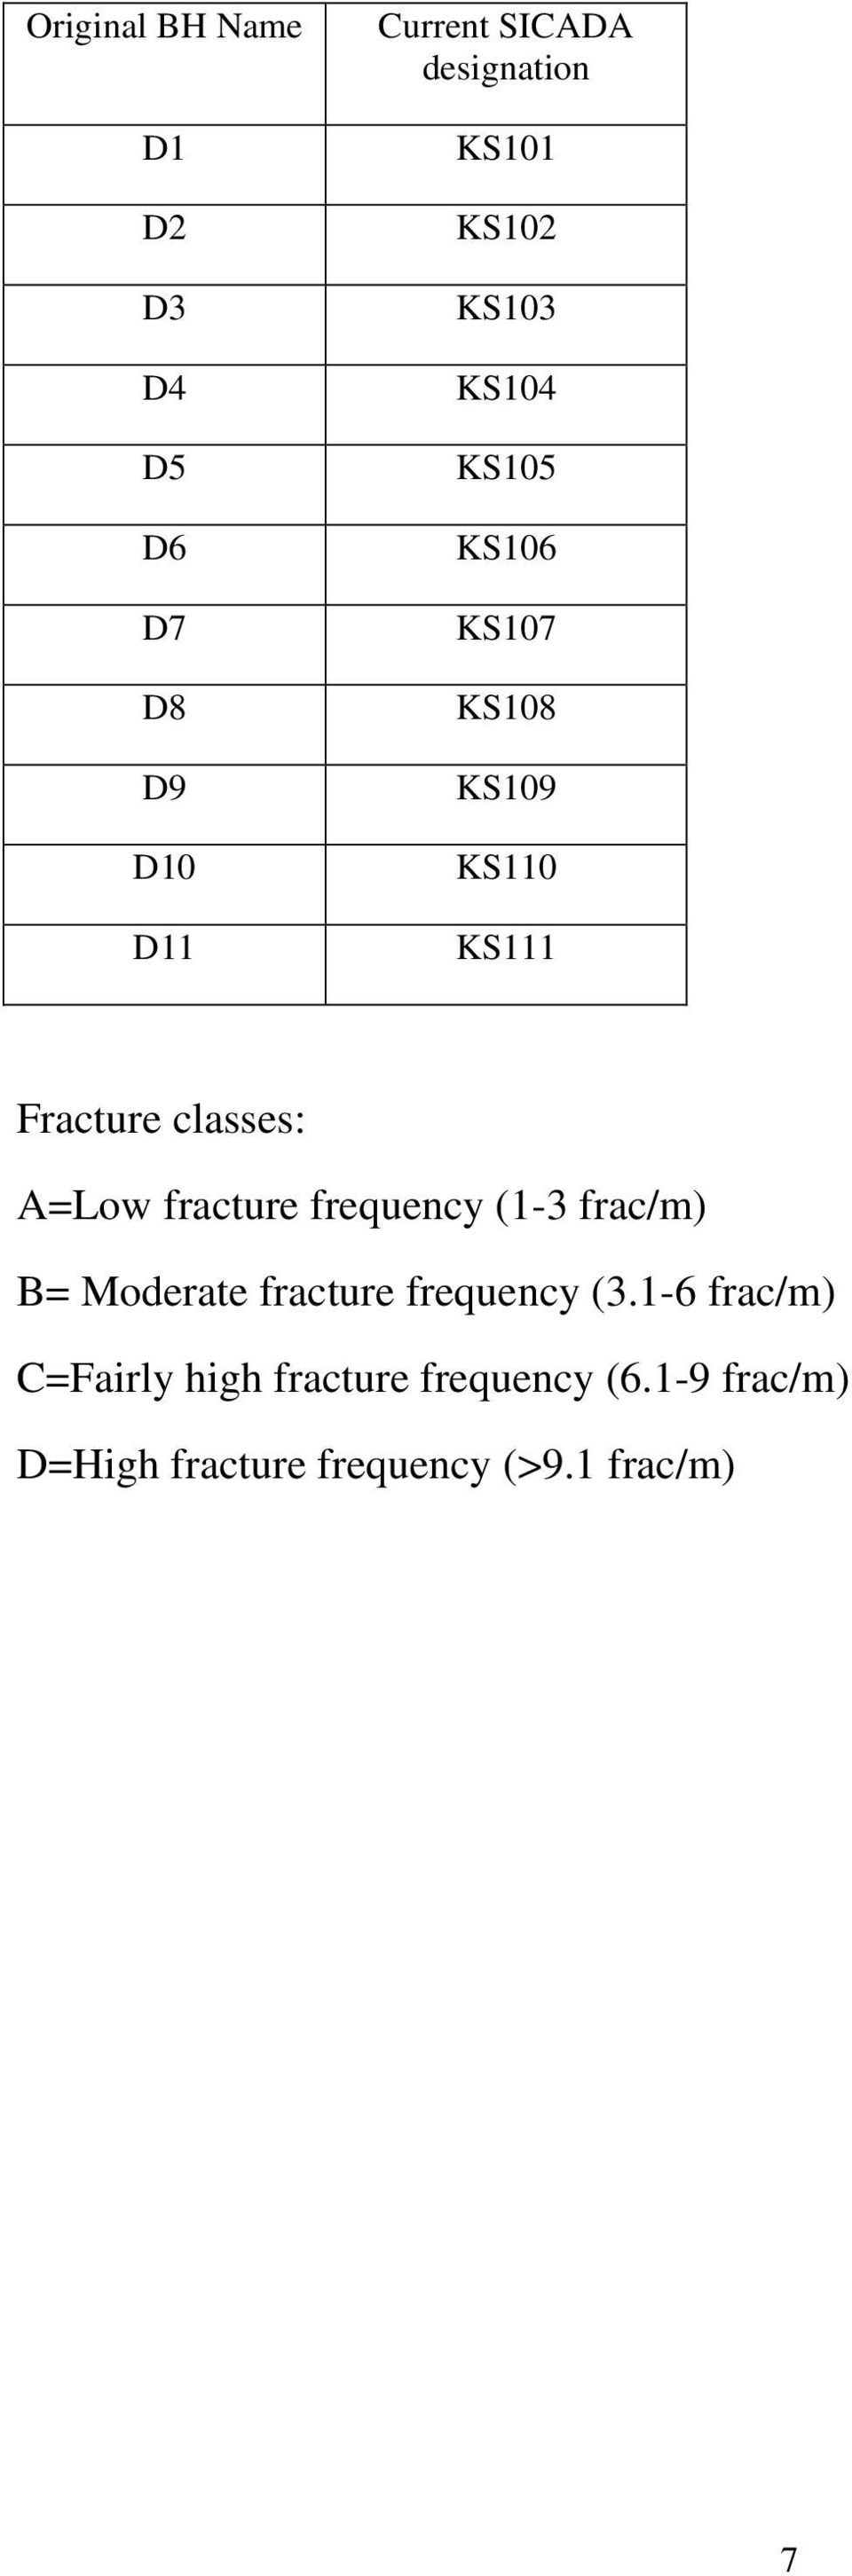 A=Low fracture frequency (1-3 frac/m) B= Moderate fracture frequency (3.